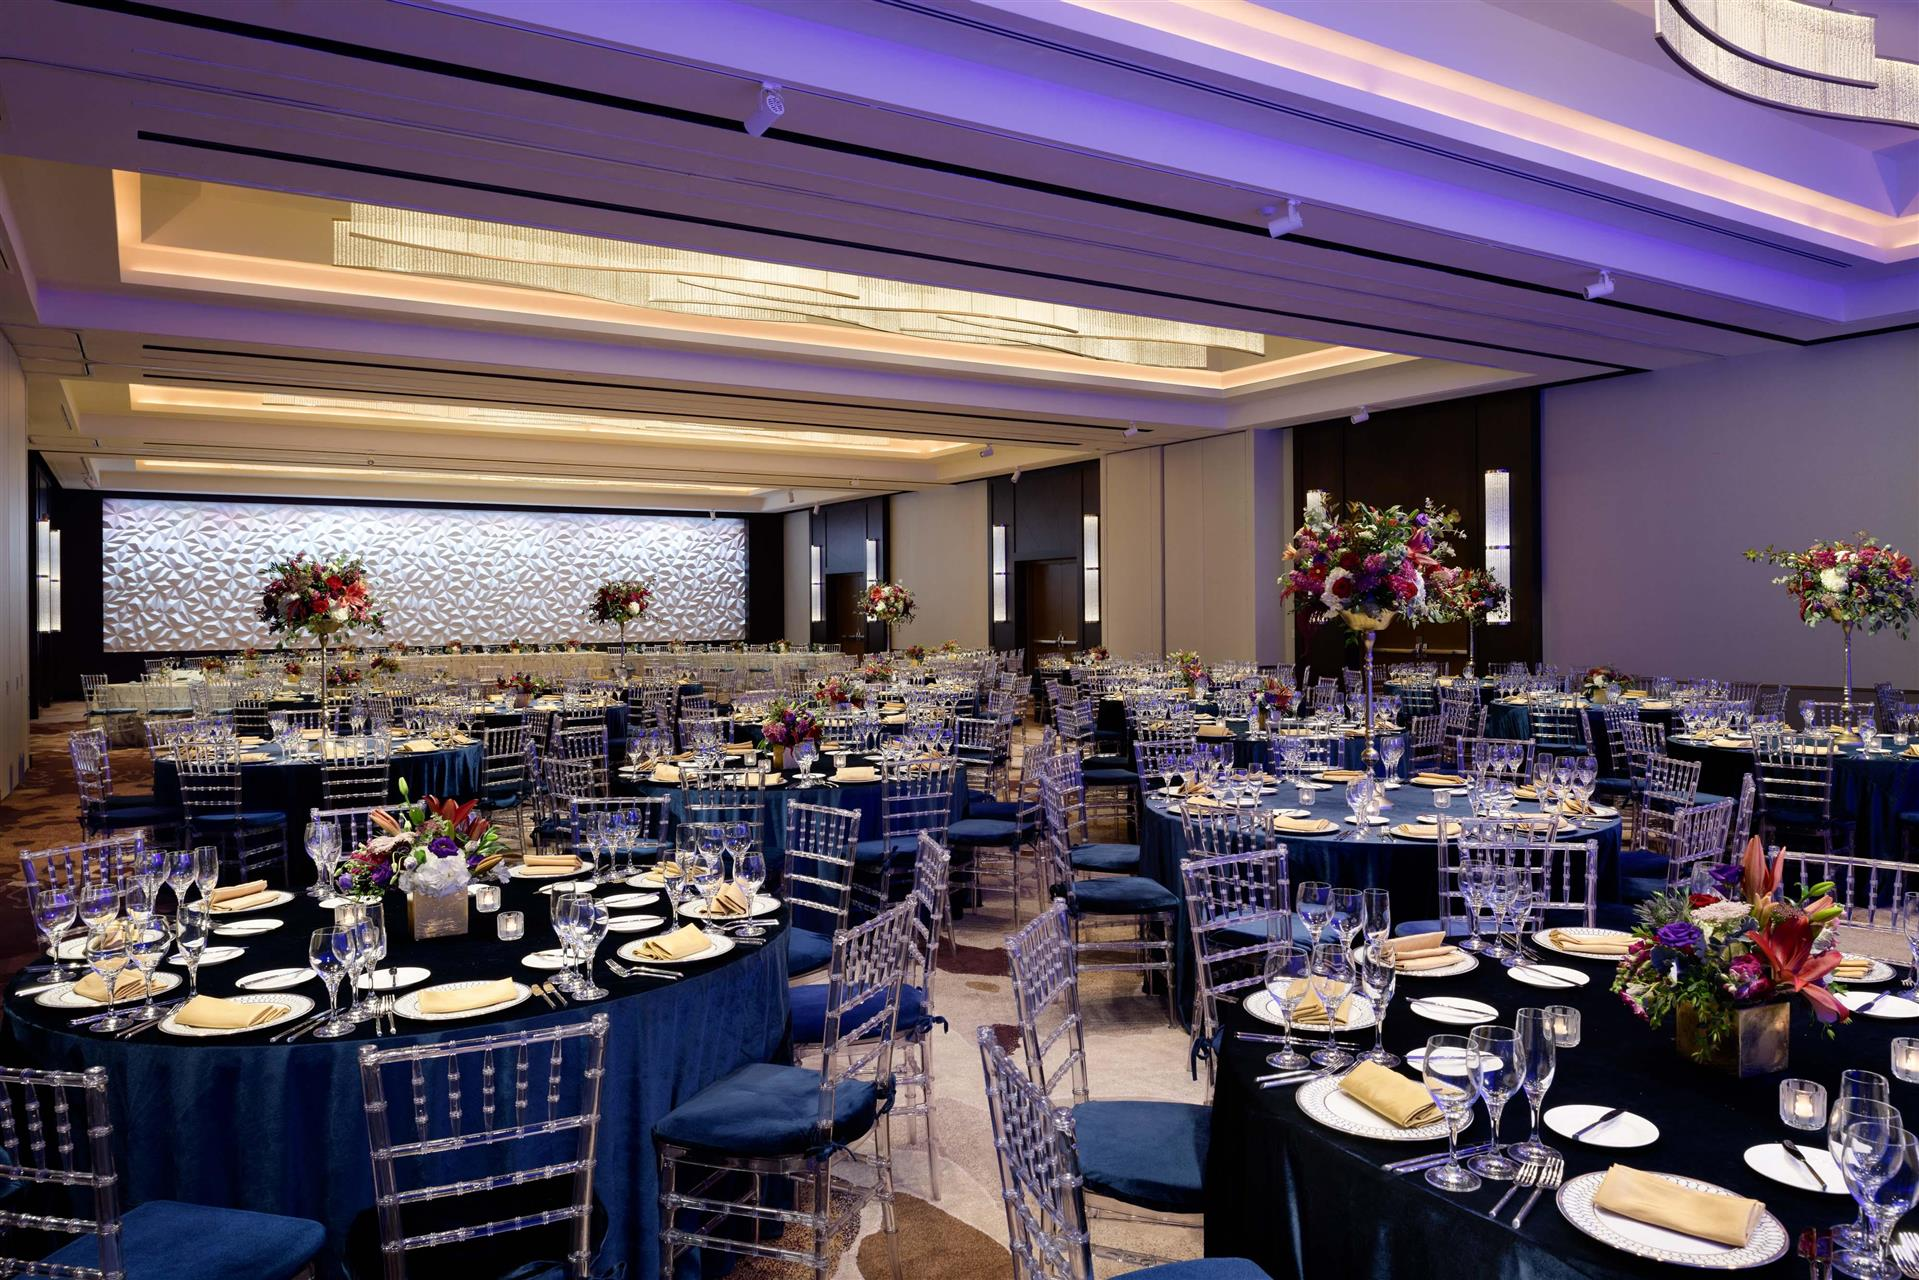 navy blue wedding reception decorations.htm meetings and events at hilton washington dc national mall  hilton washington dc national mall